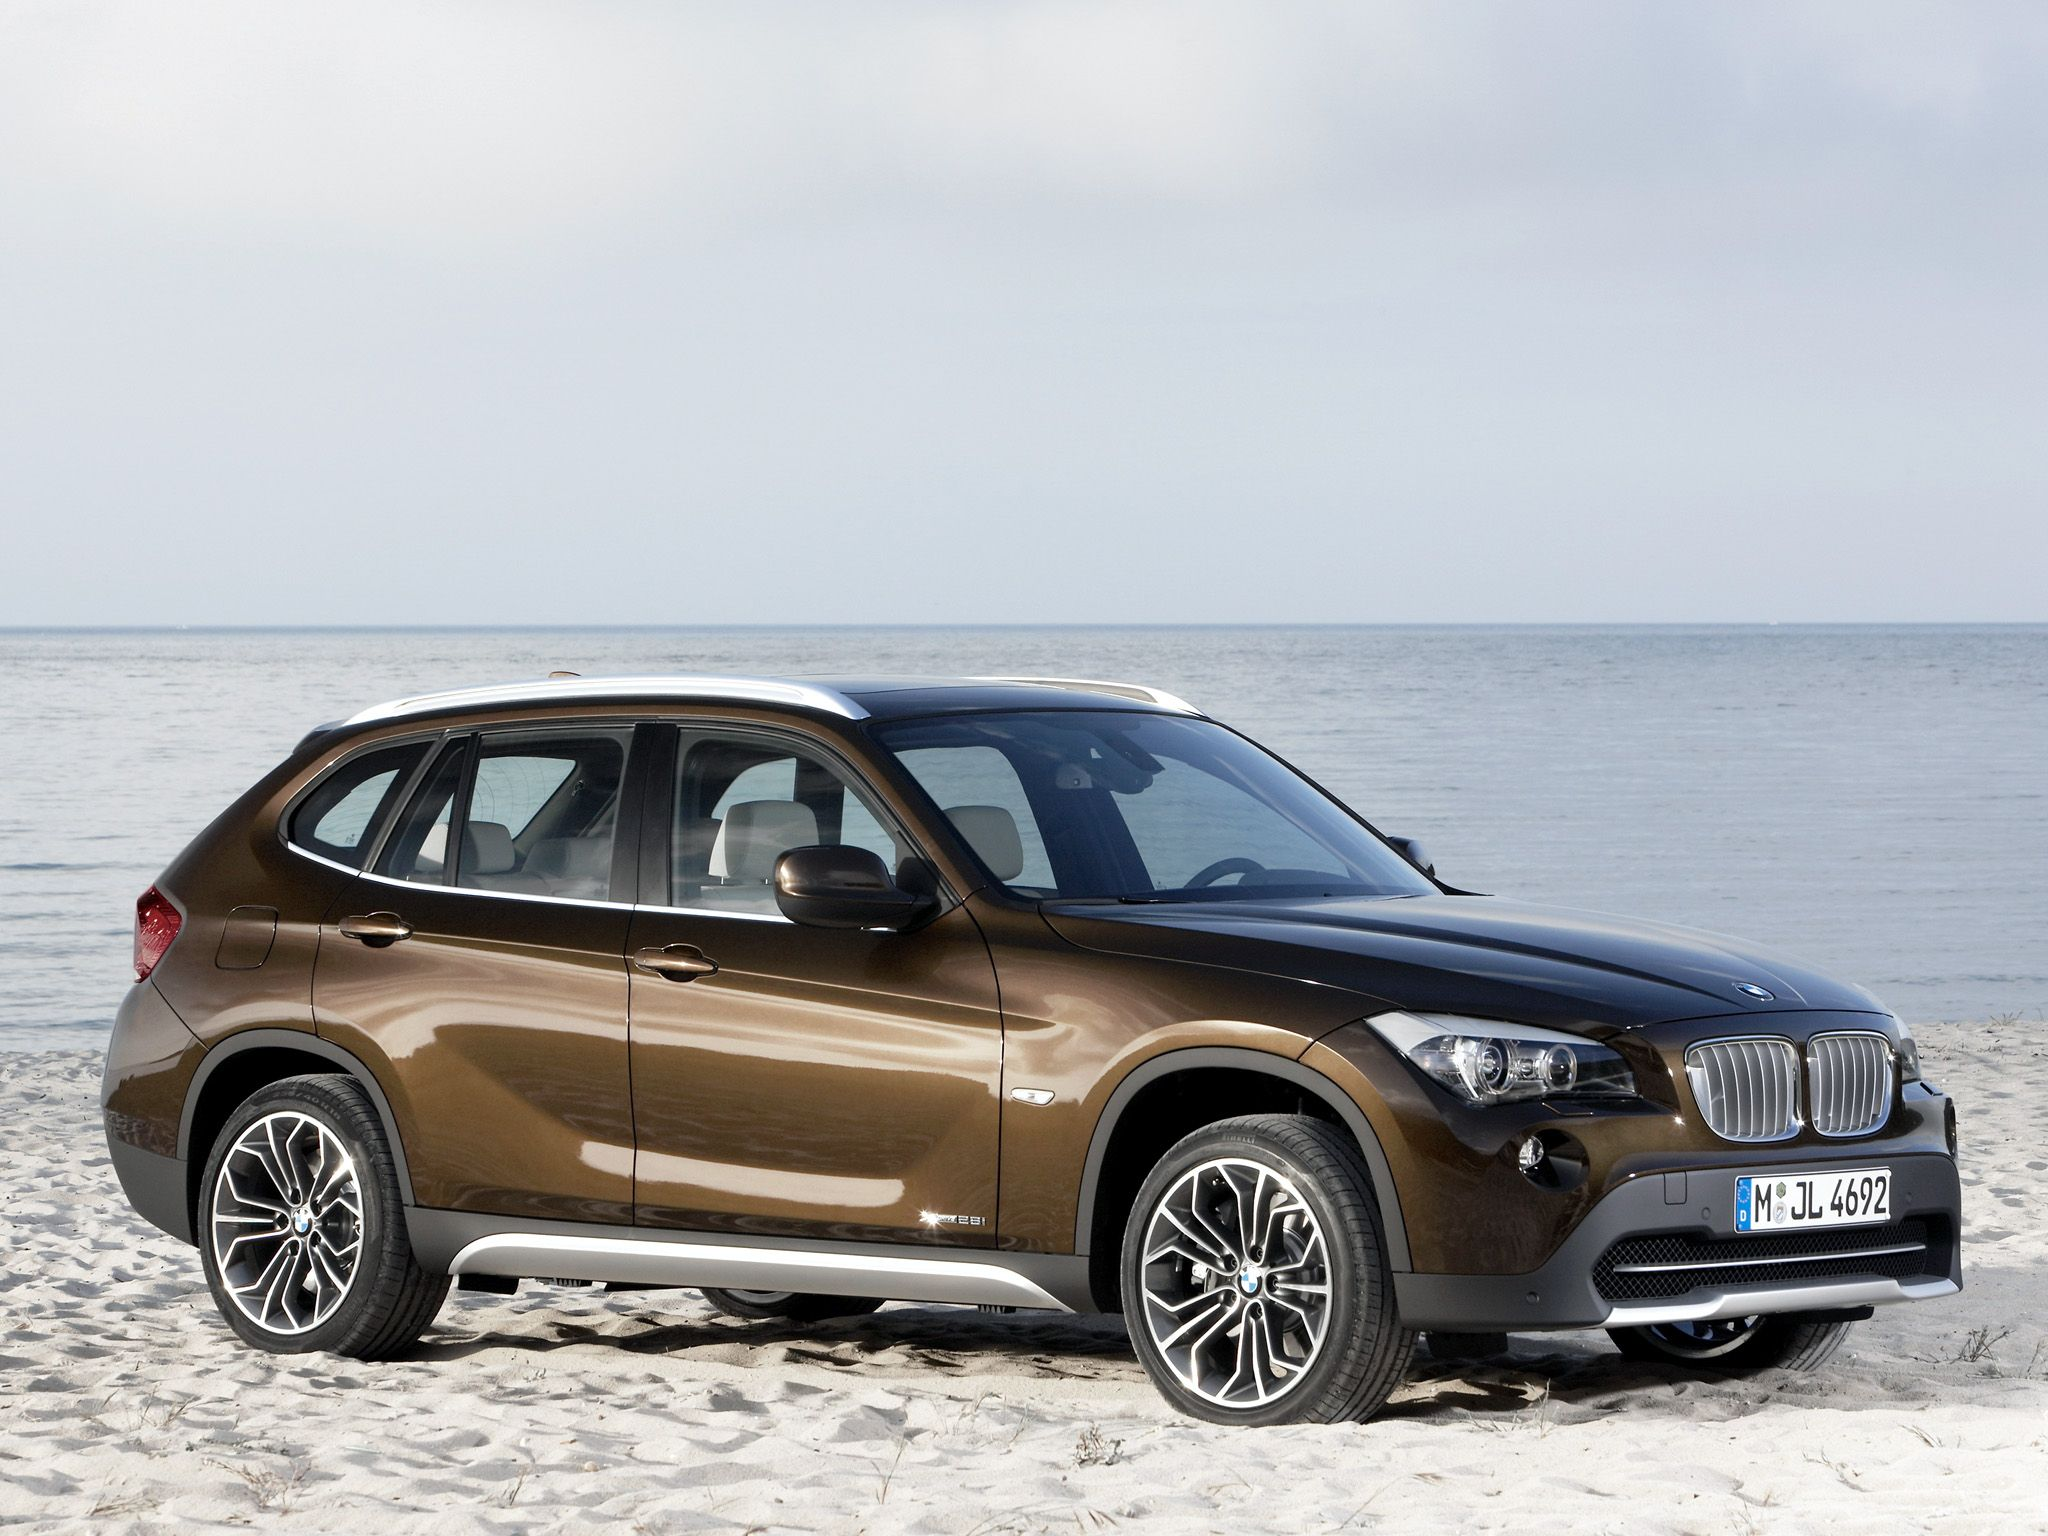 E84 Bmw X1 This Brown Color Was Actually One Of The Introduction Colors Quite Unusual For A Company Which Is Fond Of Silvers